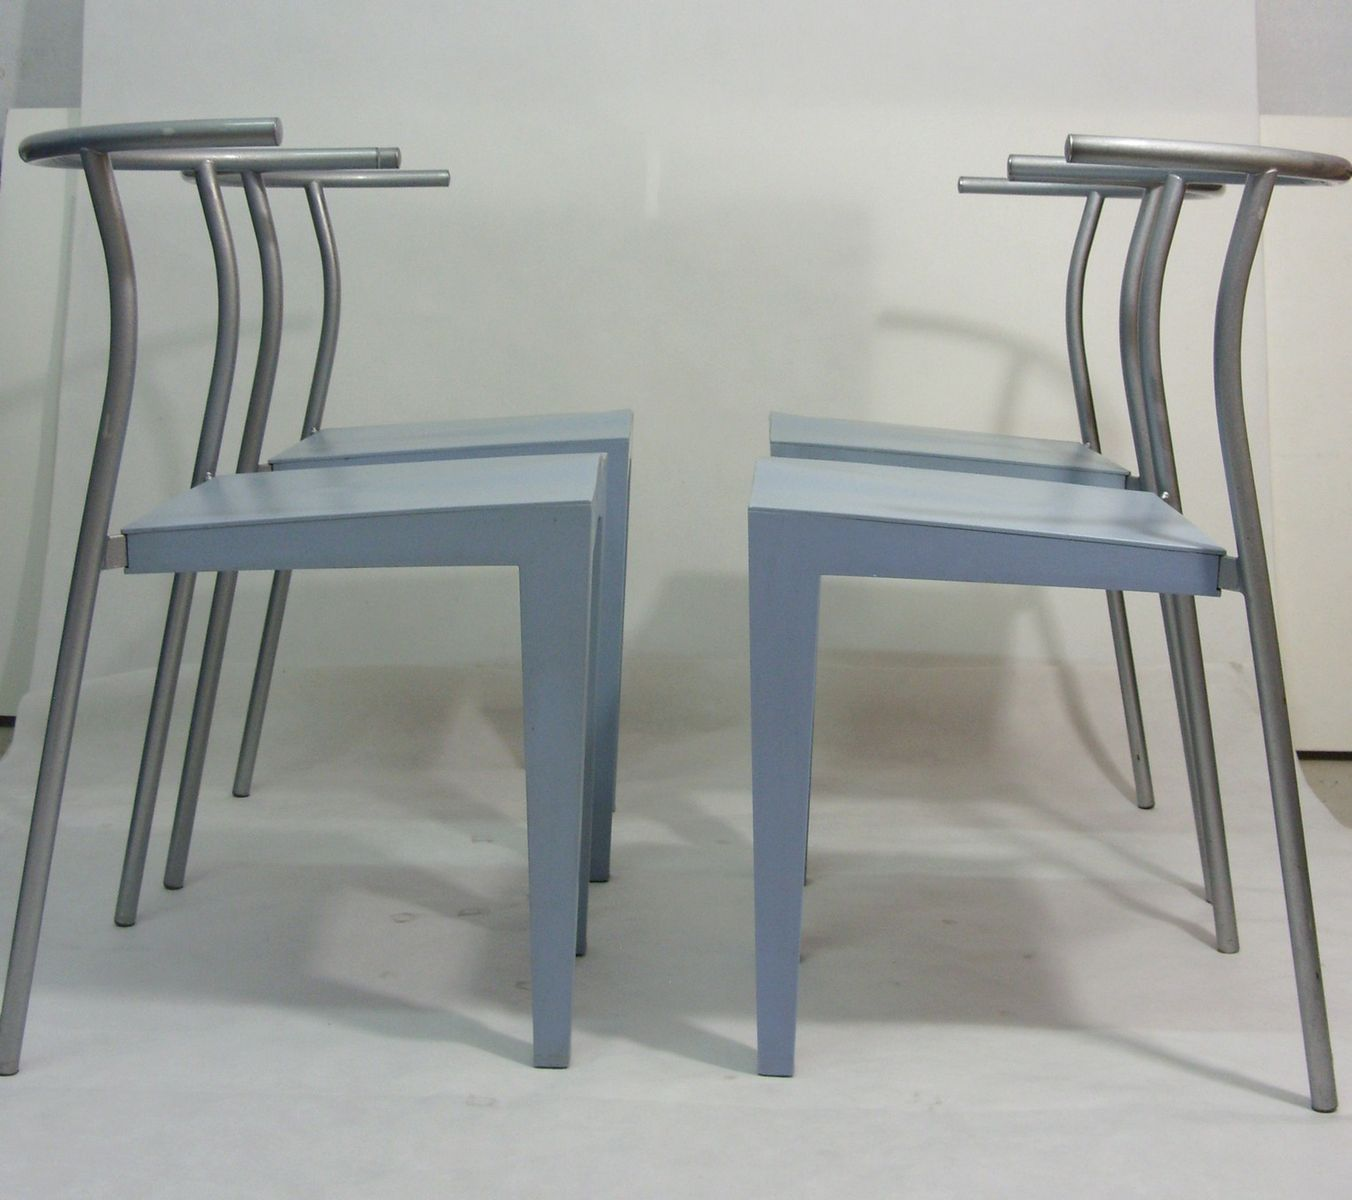 dr glob st hle von philippe starck f r kartell 1988 4er. Black Bedroom Furniture Sets. Home Design Ideas